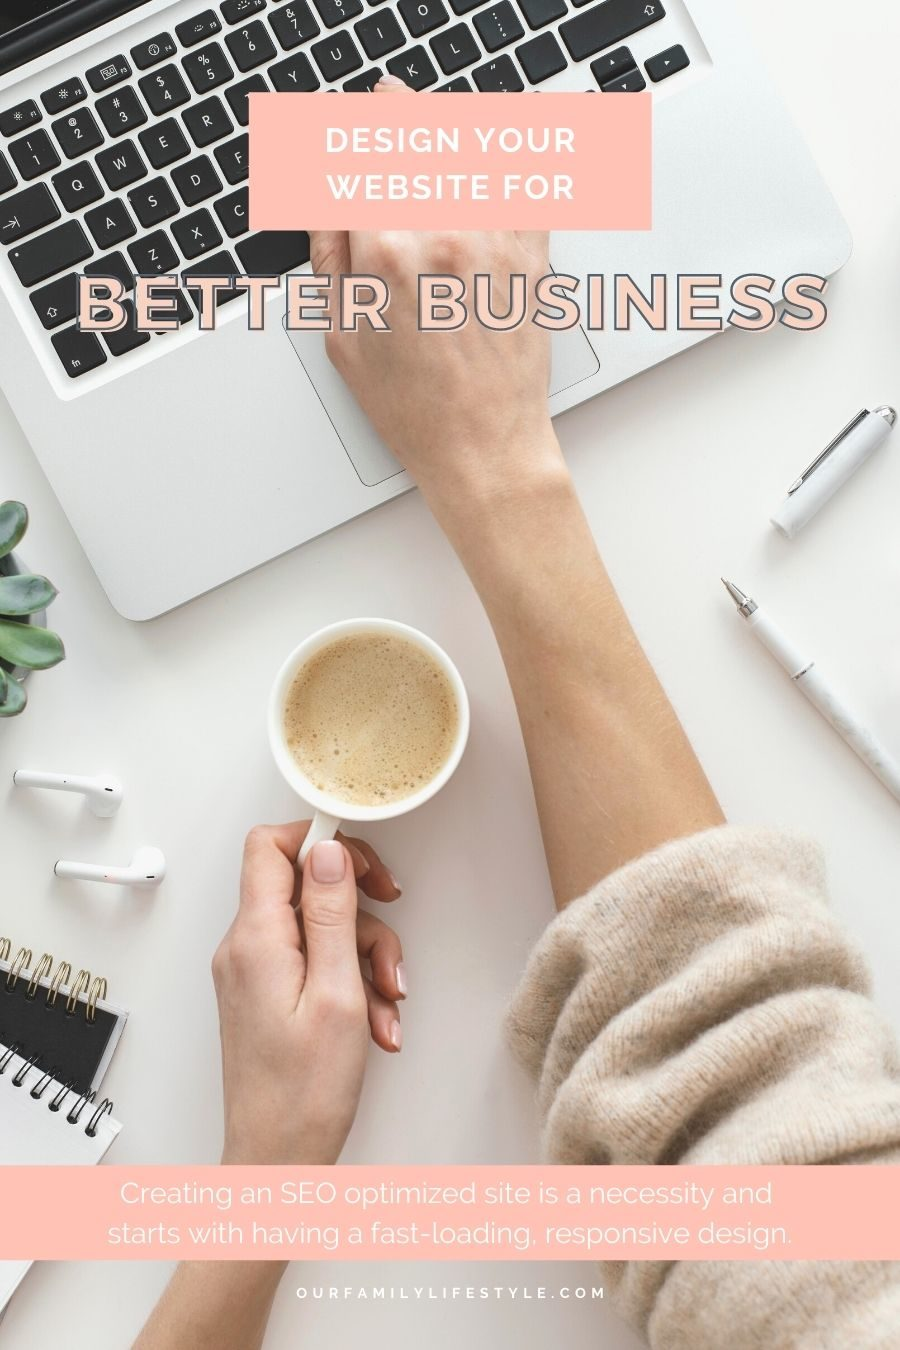 Promote And Design Your Website Perfectly For Better Business